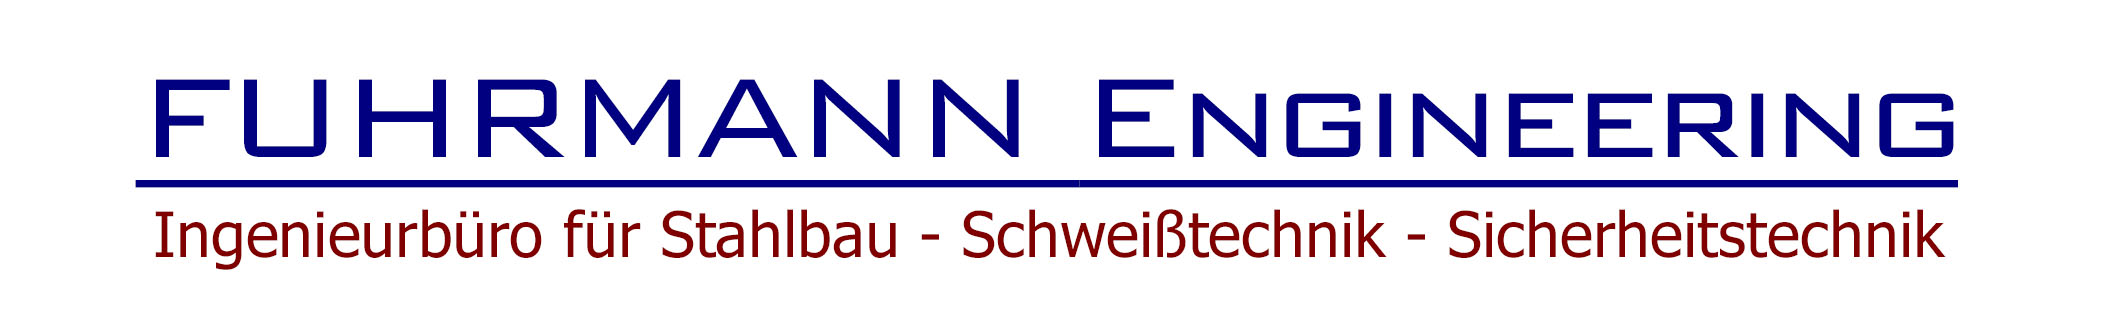 FUHRMANN ENGINEERING Logo